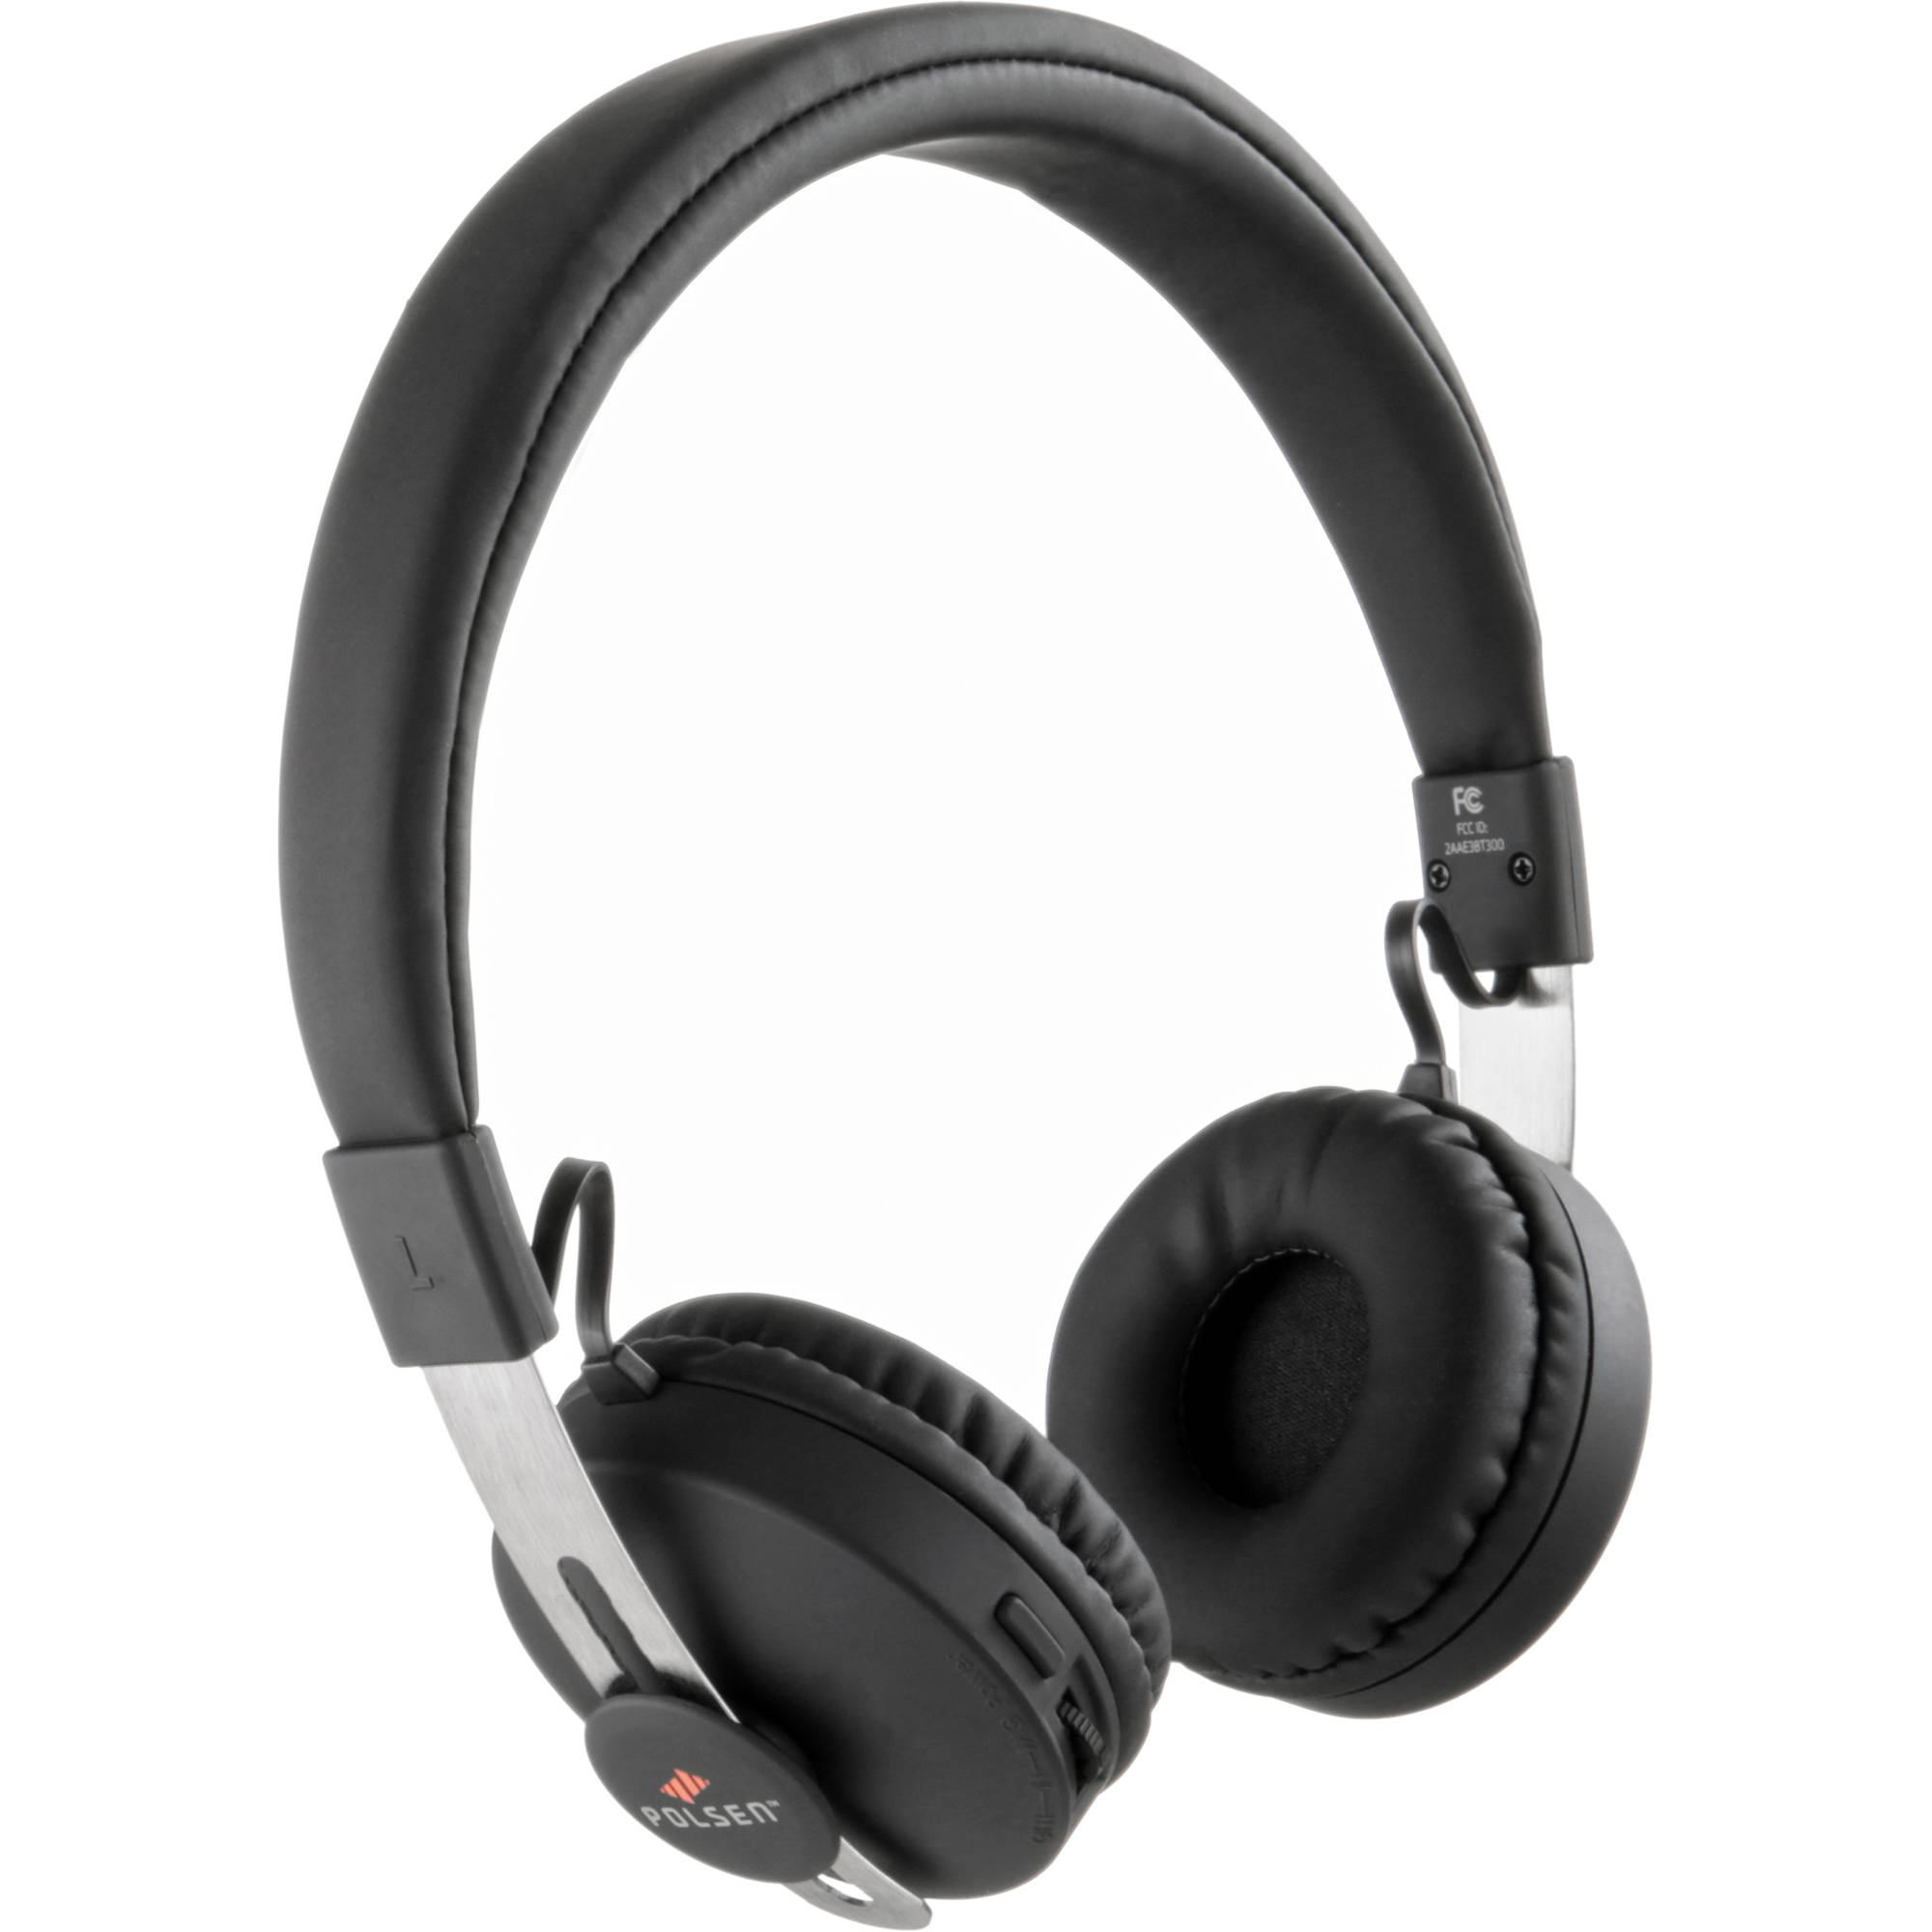 10Mb polsen hco-10mb on-ear bluetooth headset with microphone